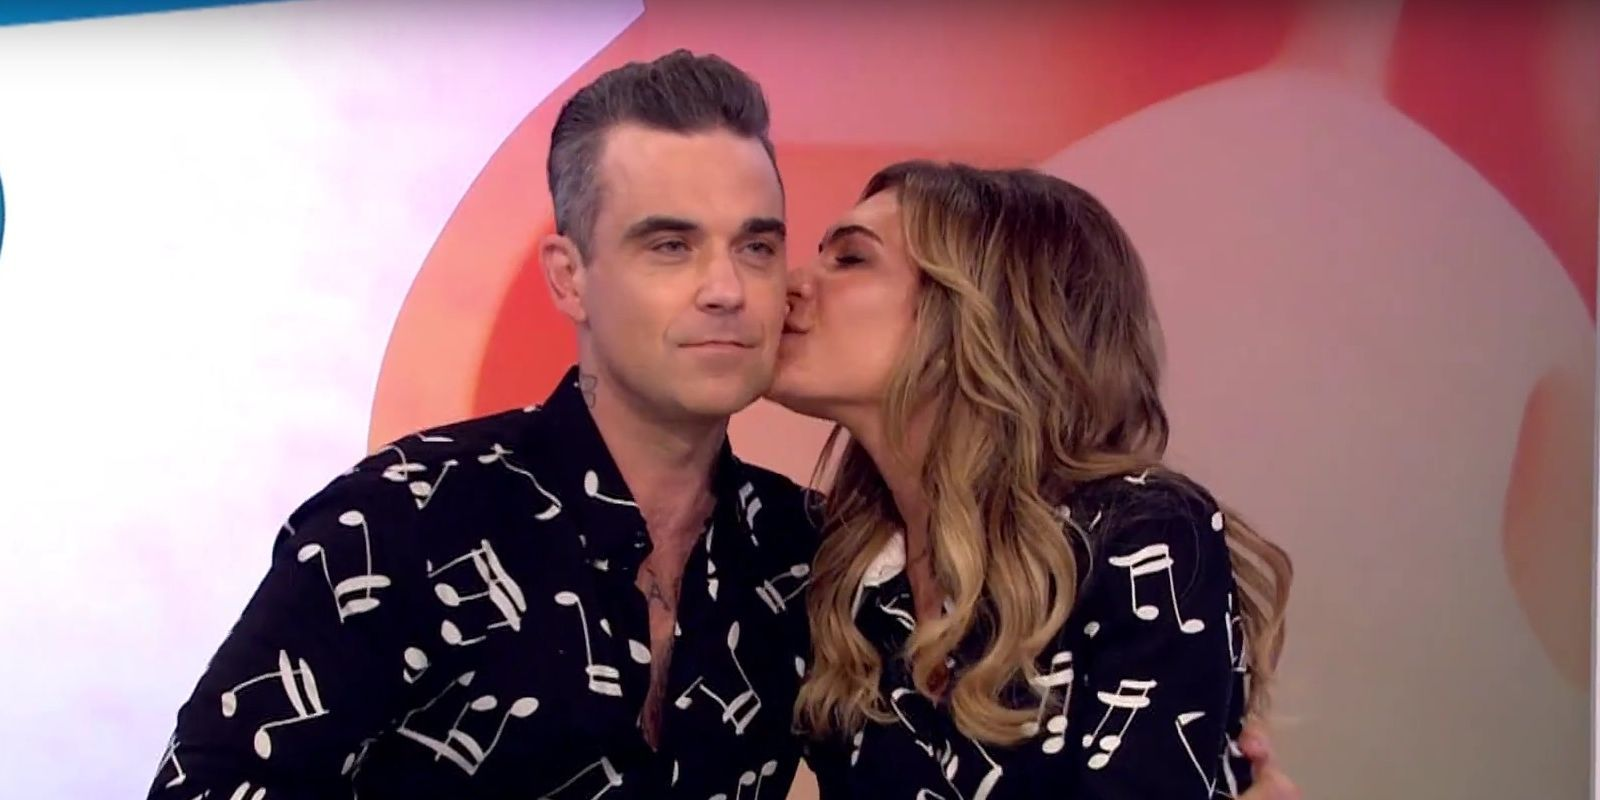 The X Factor fans outraged at prospect of Robbie Williams' wife Ayda Field as a judge